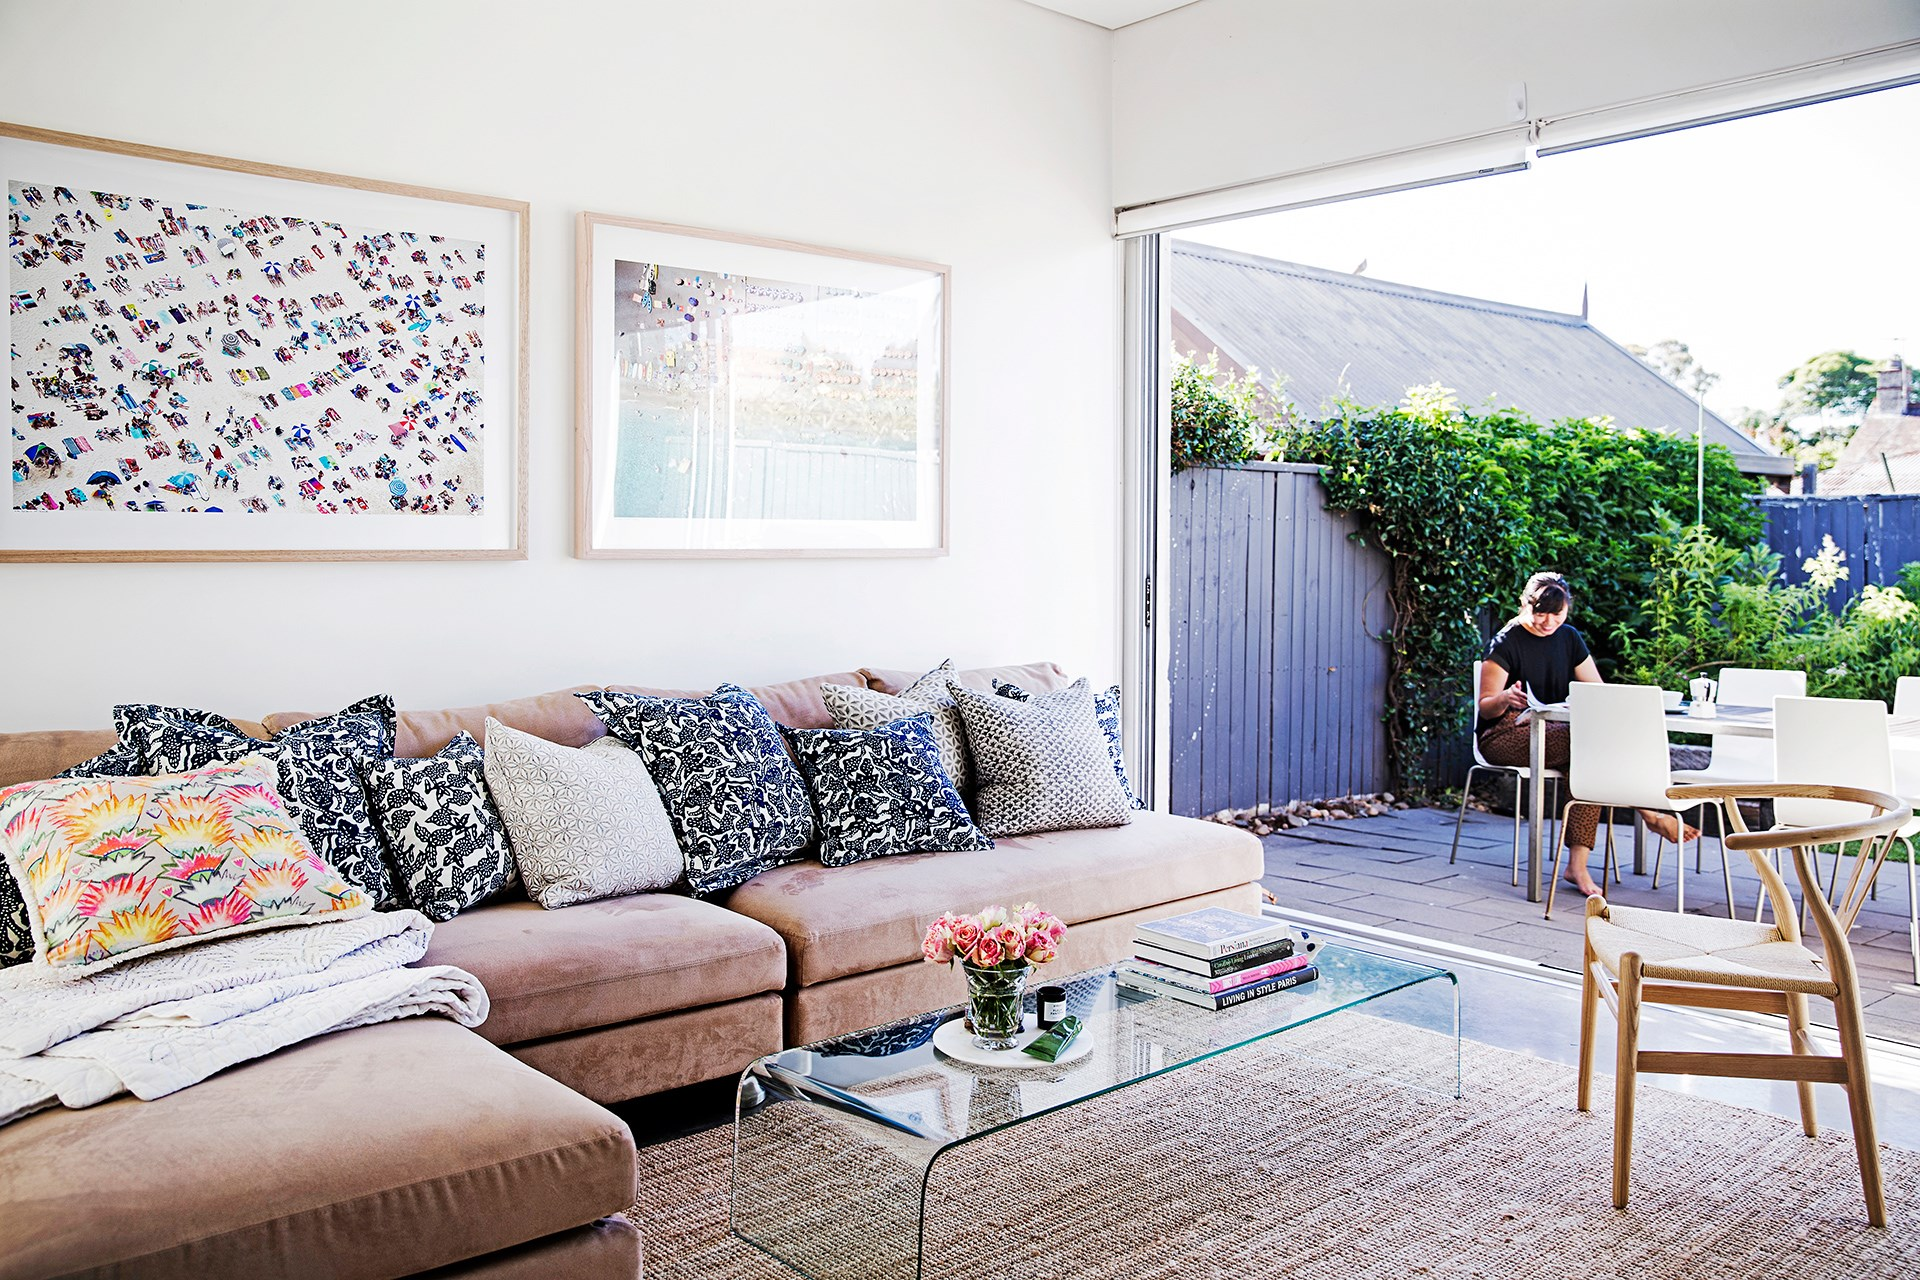 **Vanessa Miles** This Sydney workers cottage received a few contemporary touch-ups while retaining its original charming features. [See the full home here](http://www.homestolove.com.au/renovated-workers-cottage-mixes-old-with-new-3556) or [vote for this home](http://www.homestolove.com.au/homes-reader-home-of-the-year-4499).